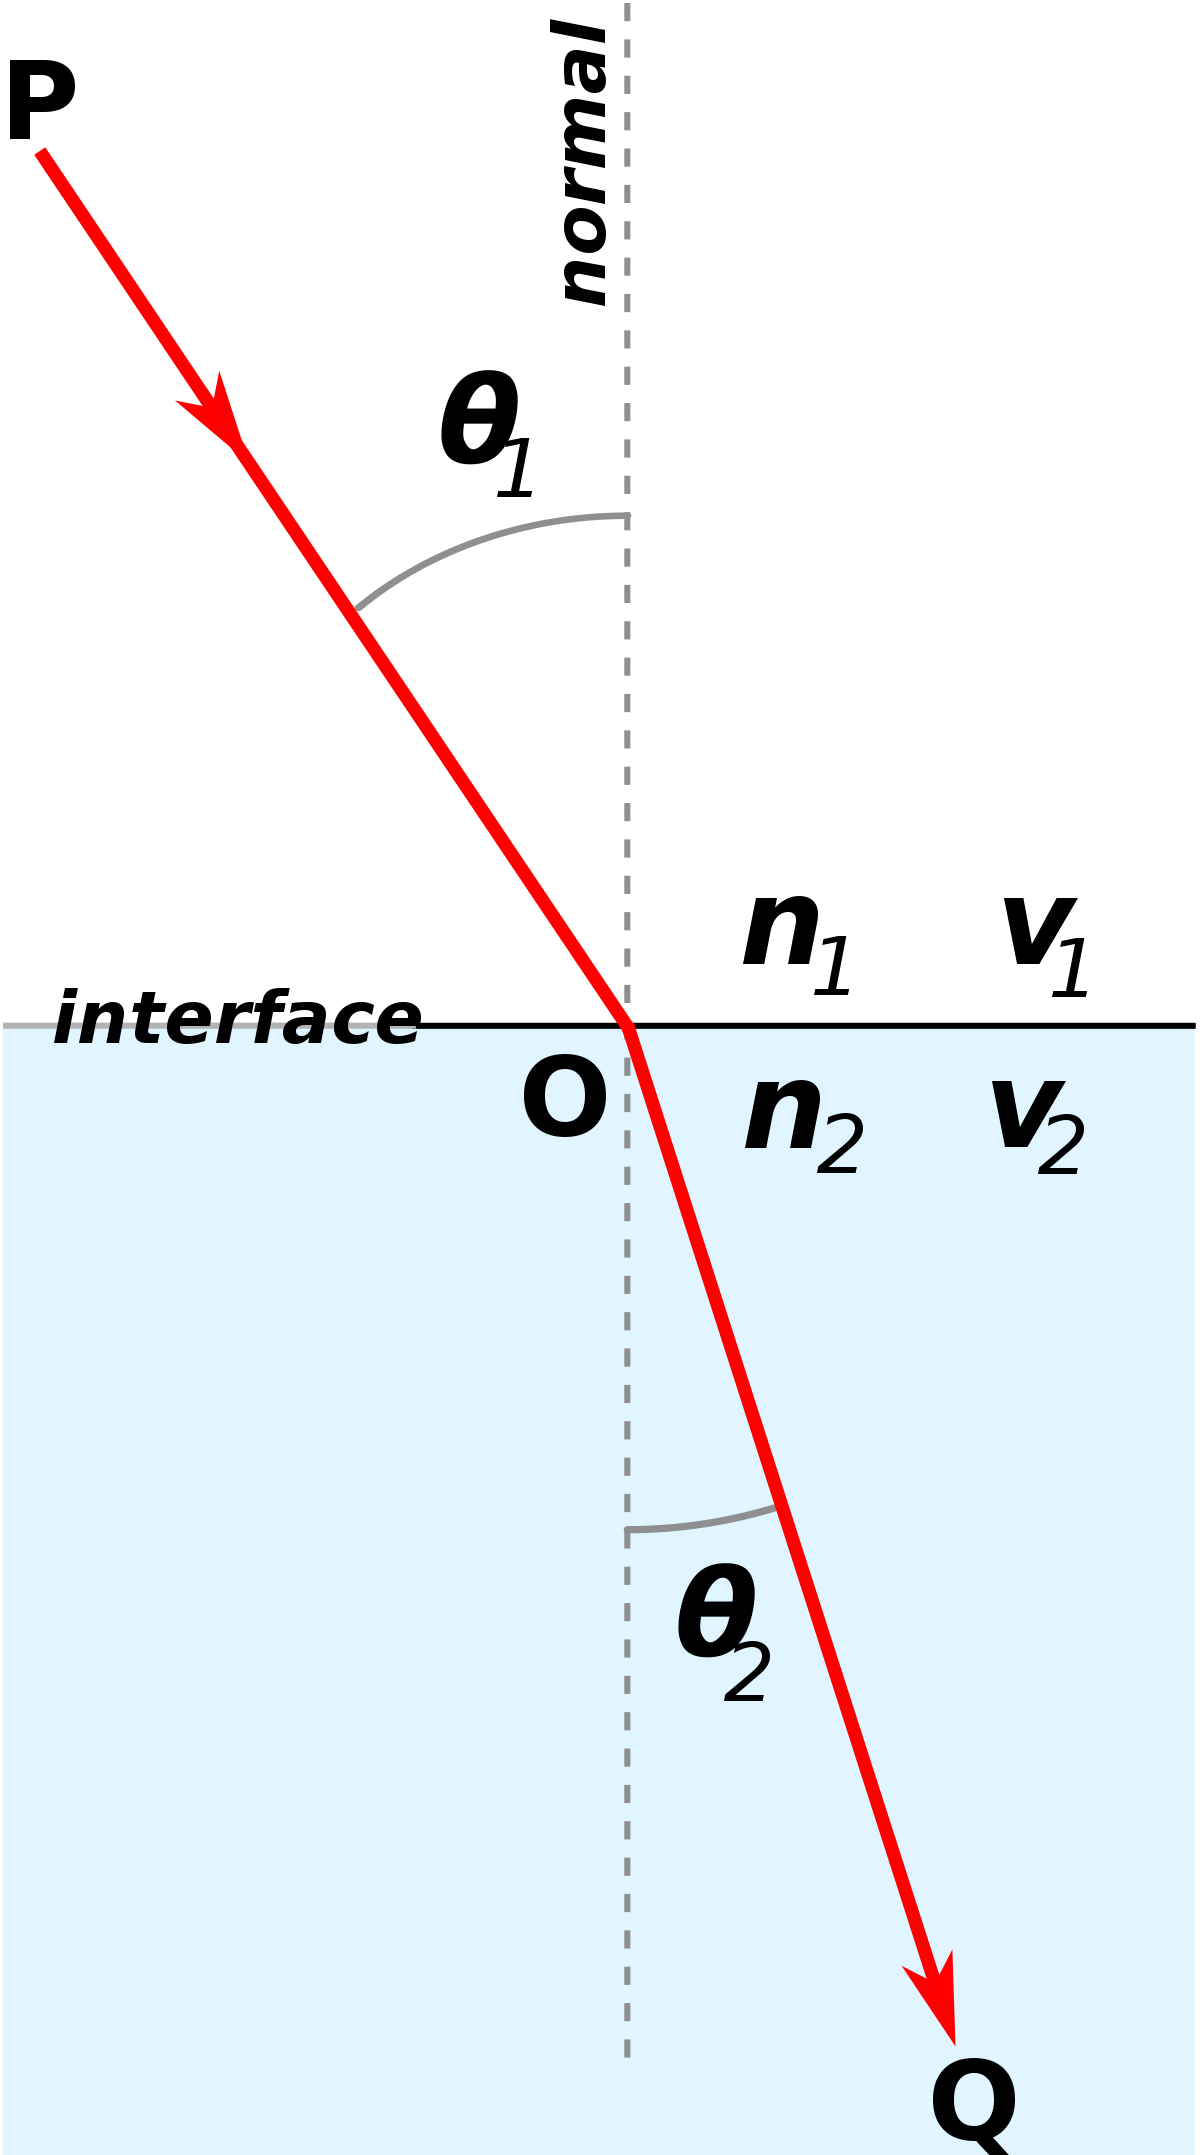 Reflect vector refraction. Snell s law wikipedia